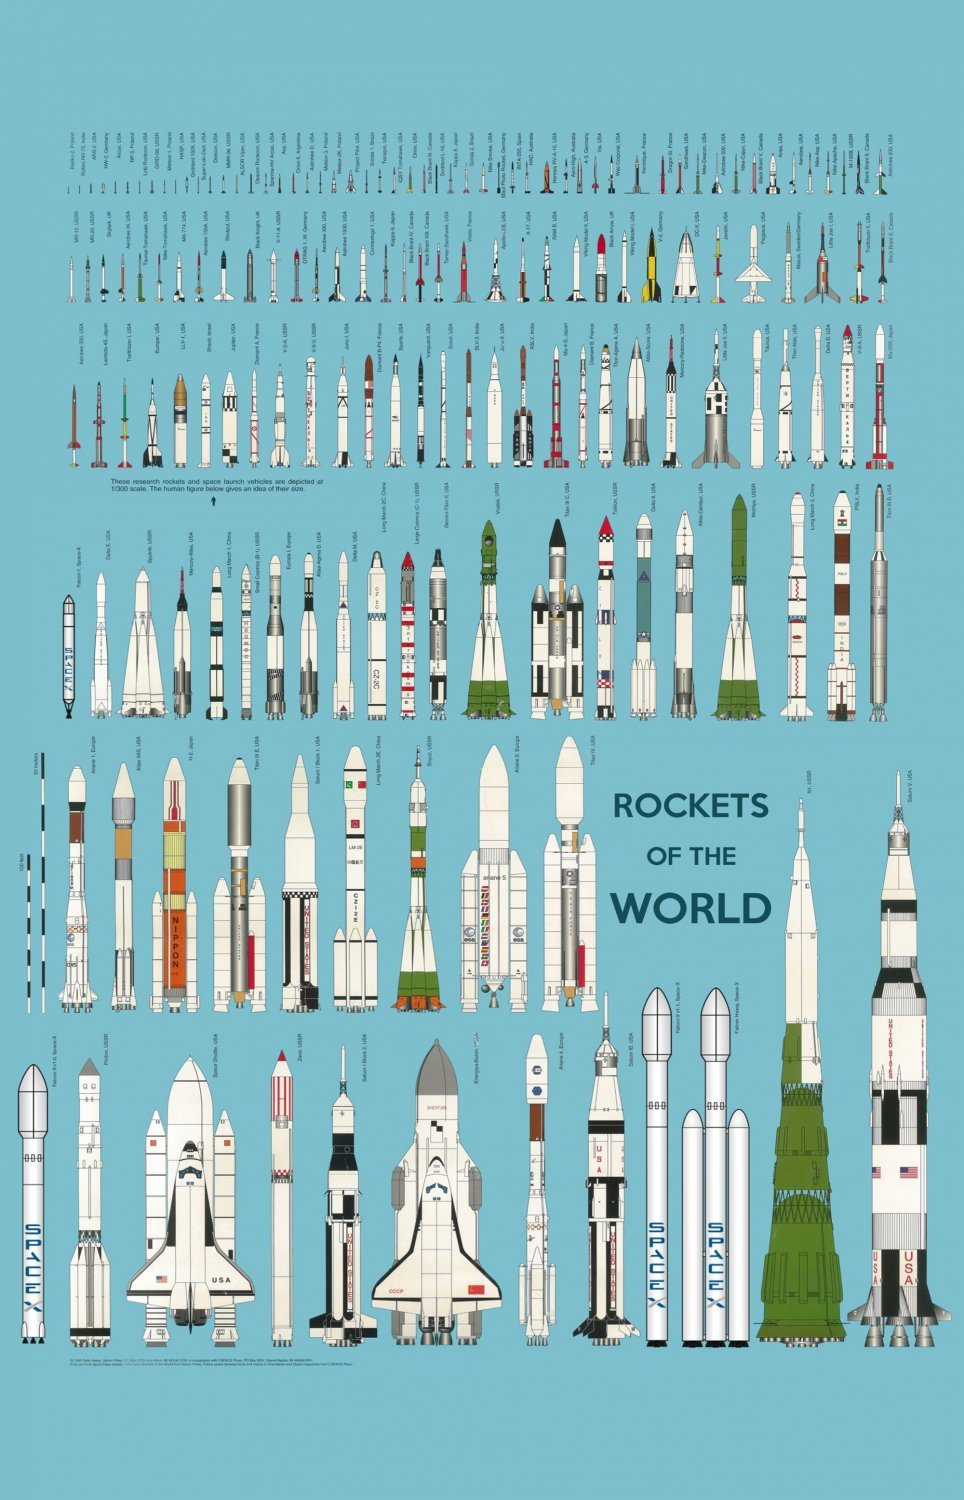 Rockets of the World Chart   24x35 inches Canvas Print